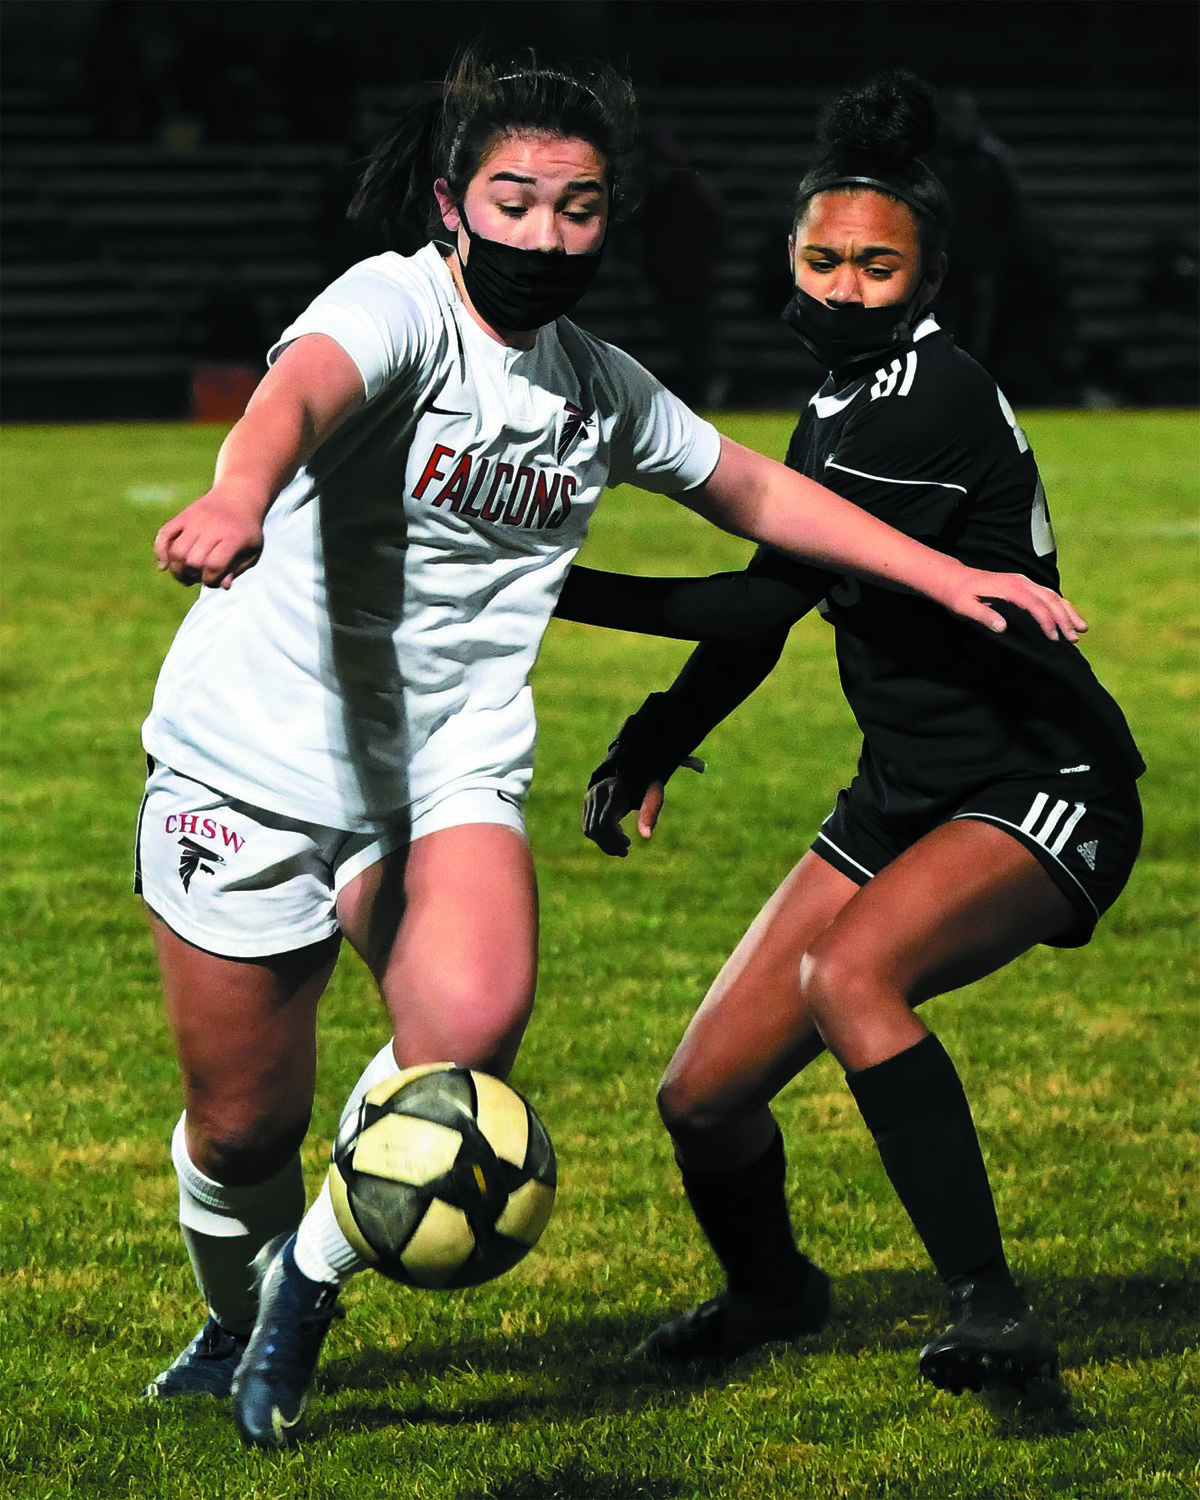 UP THE FIELD: Cranston West's Ariana Torres battles for the ball in the quarterfinals